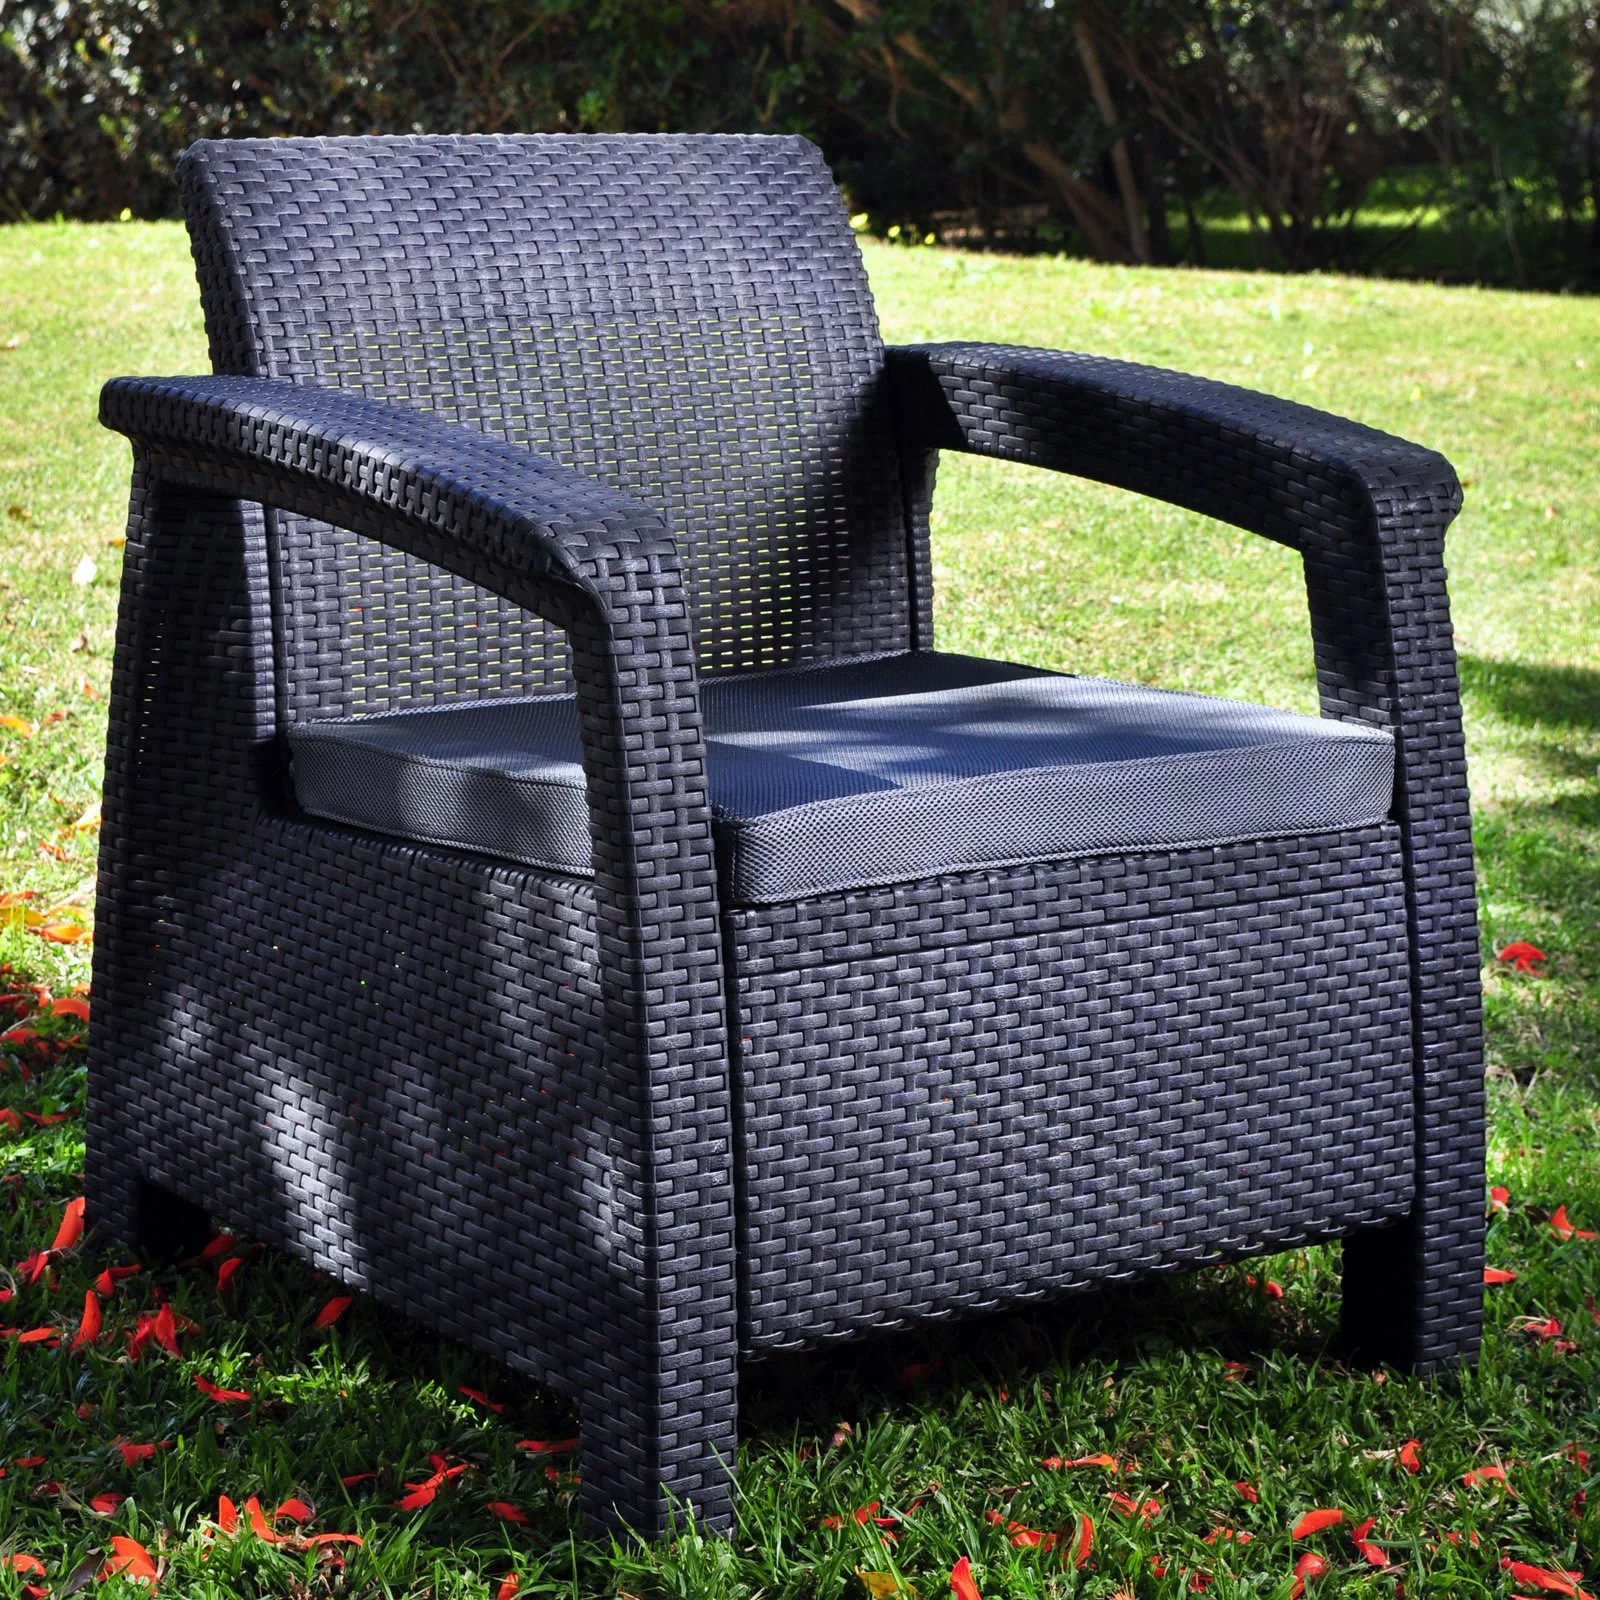 keter corfu resin wicker armchair outdoor all weather patio seat gray